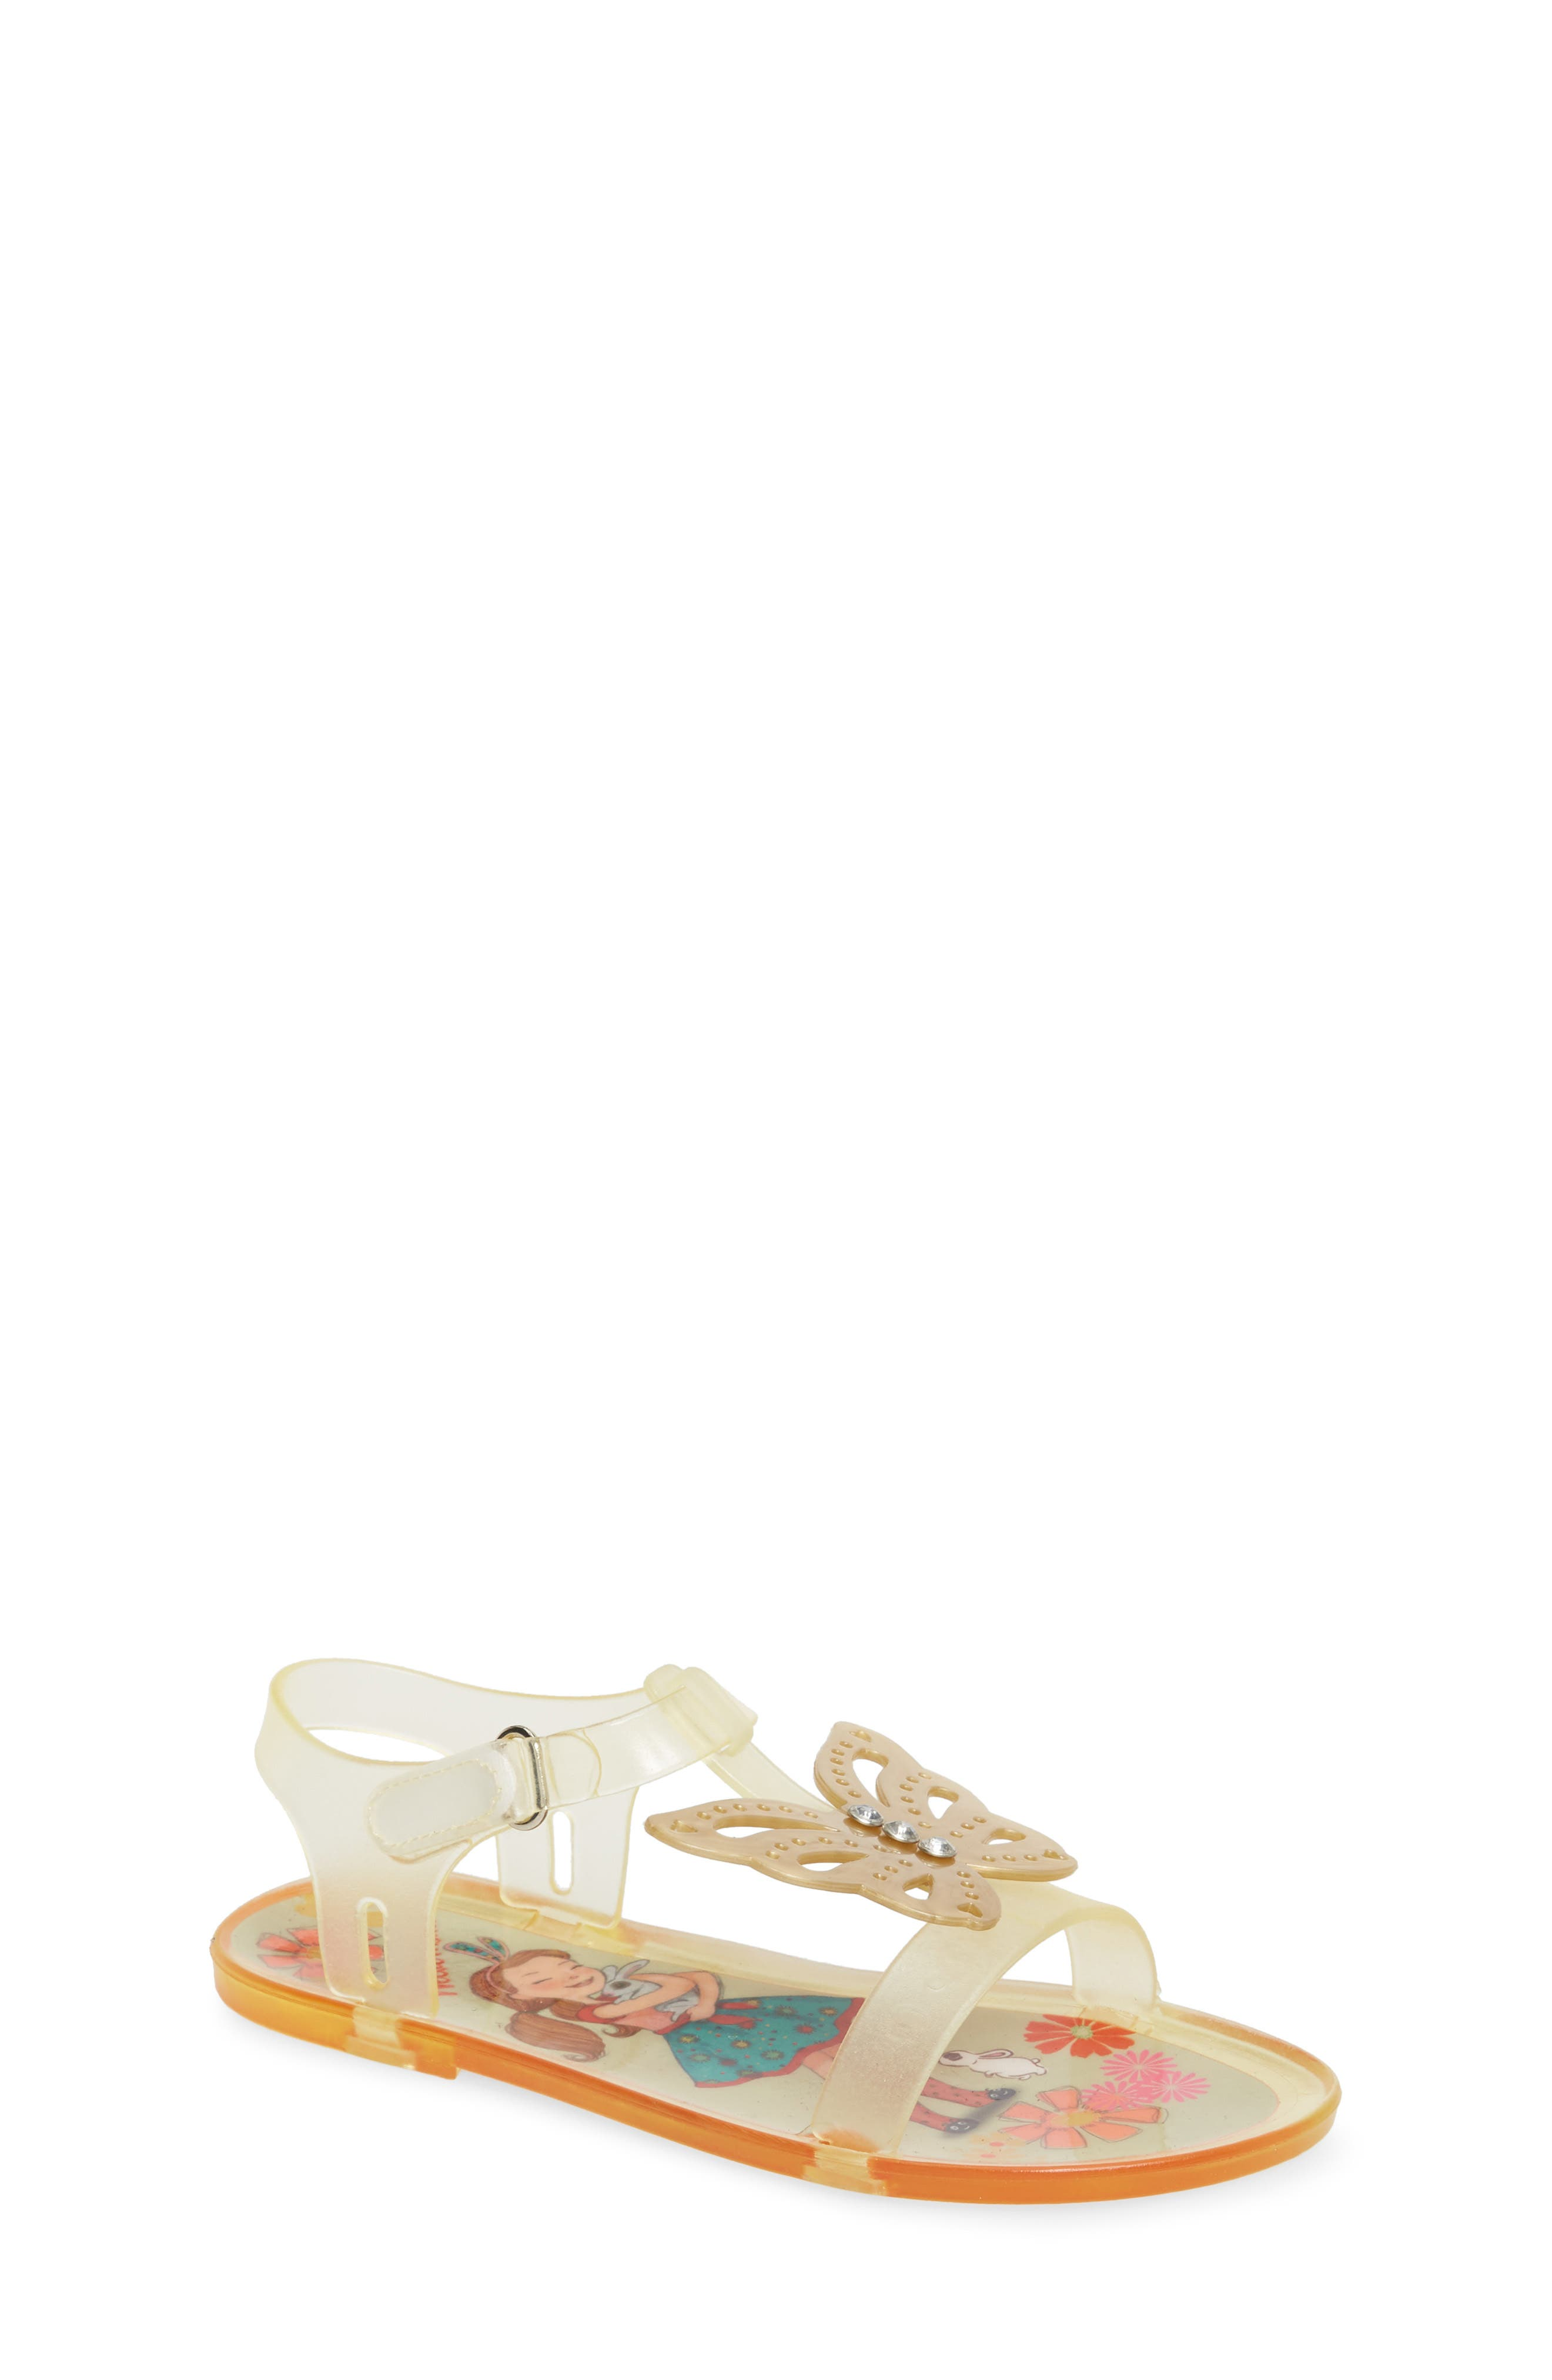 Willa Butterfly Jelly Sandal,                             Main thumbnail 1, color,                             710